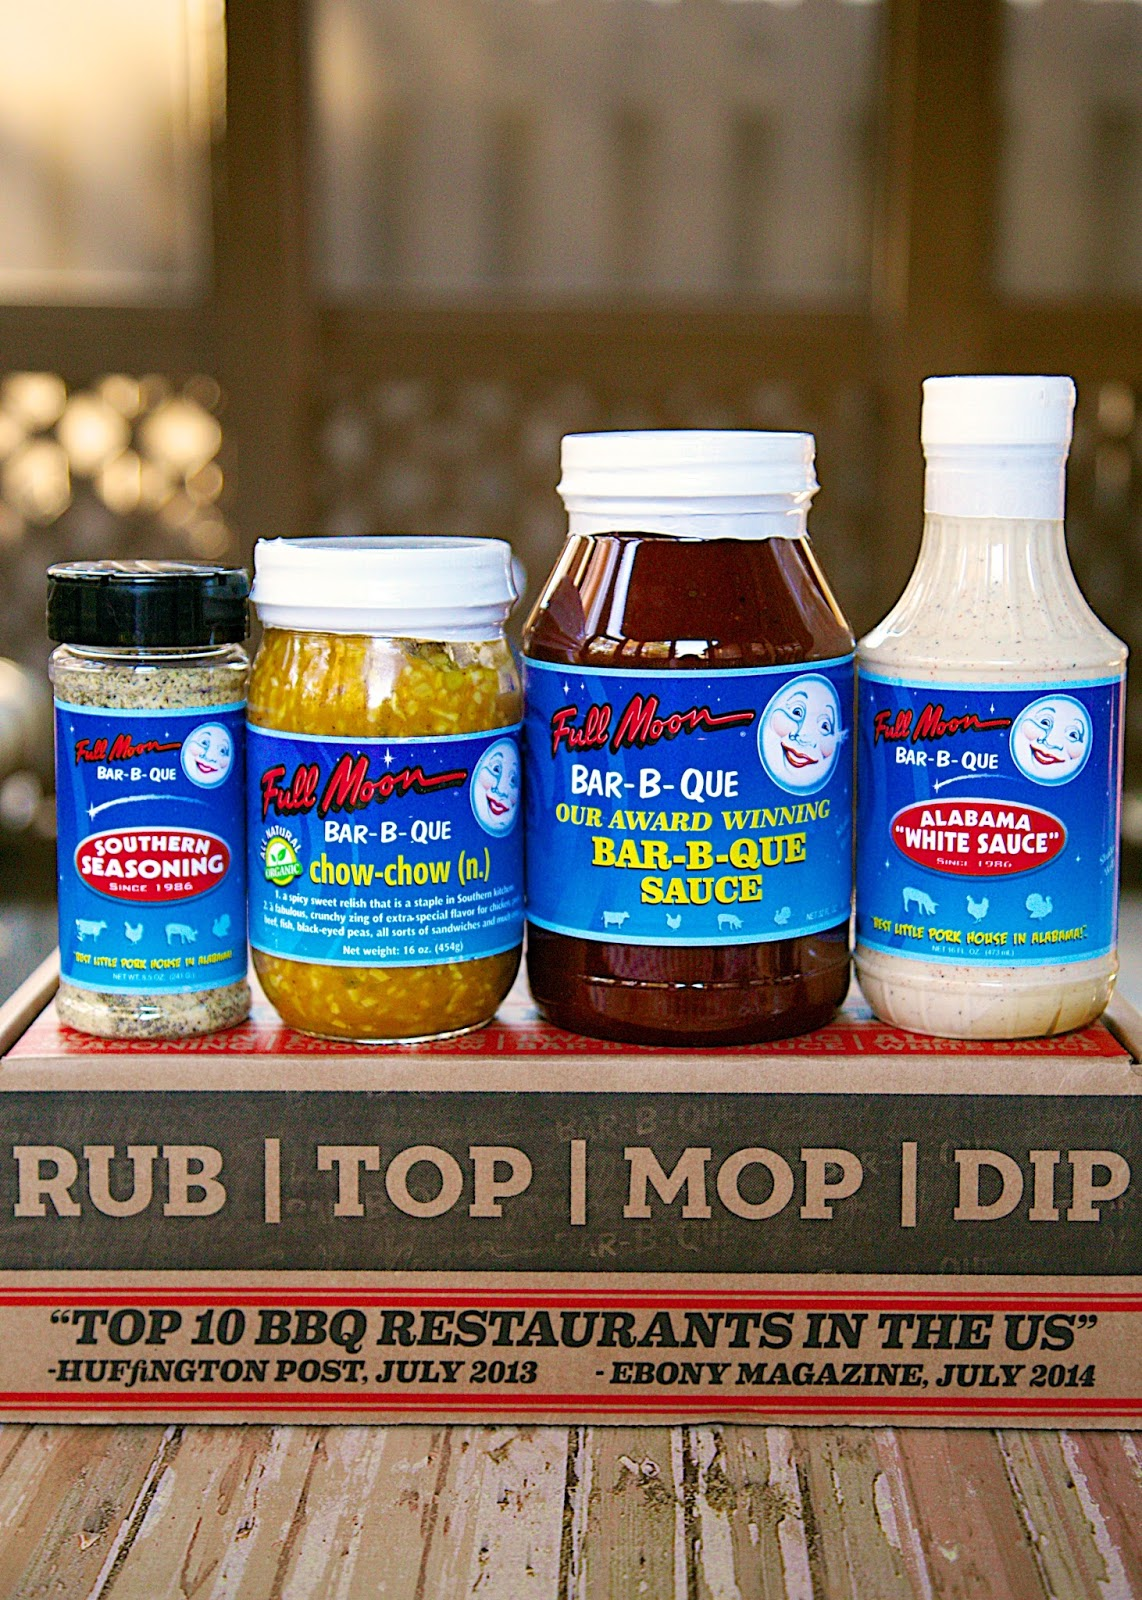 Ultimate BBQ Box - Full Moon BBQ - Try one of the Top 10 BBQ joints at home!